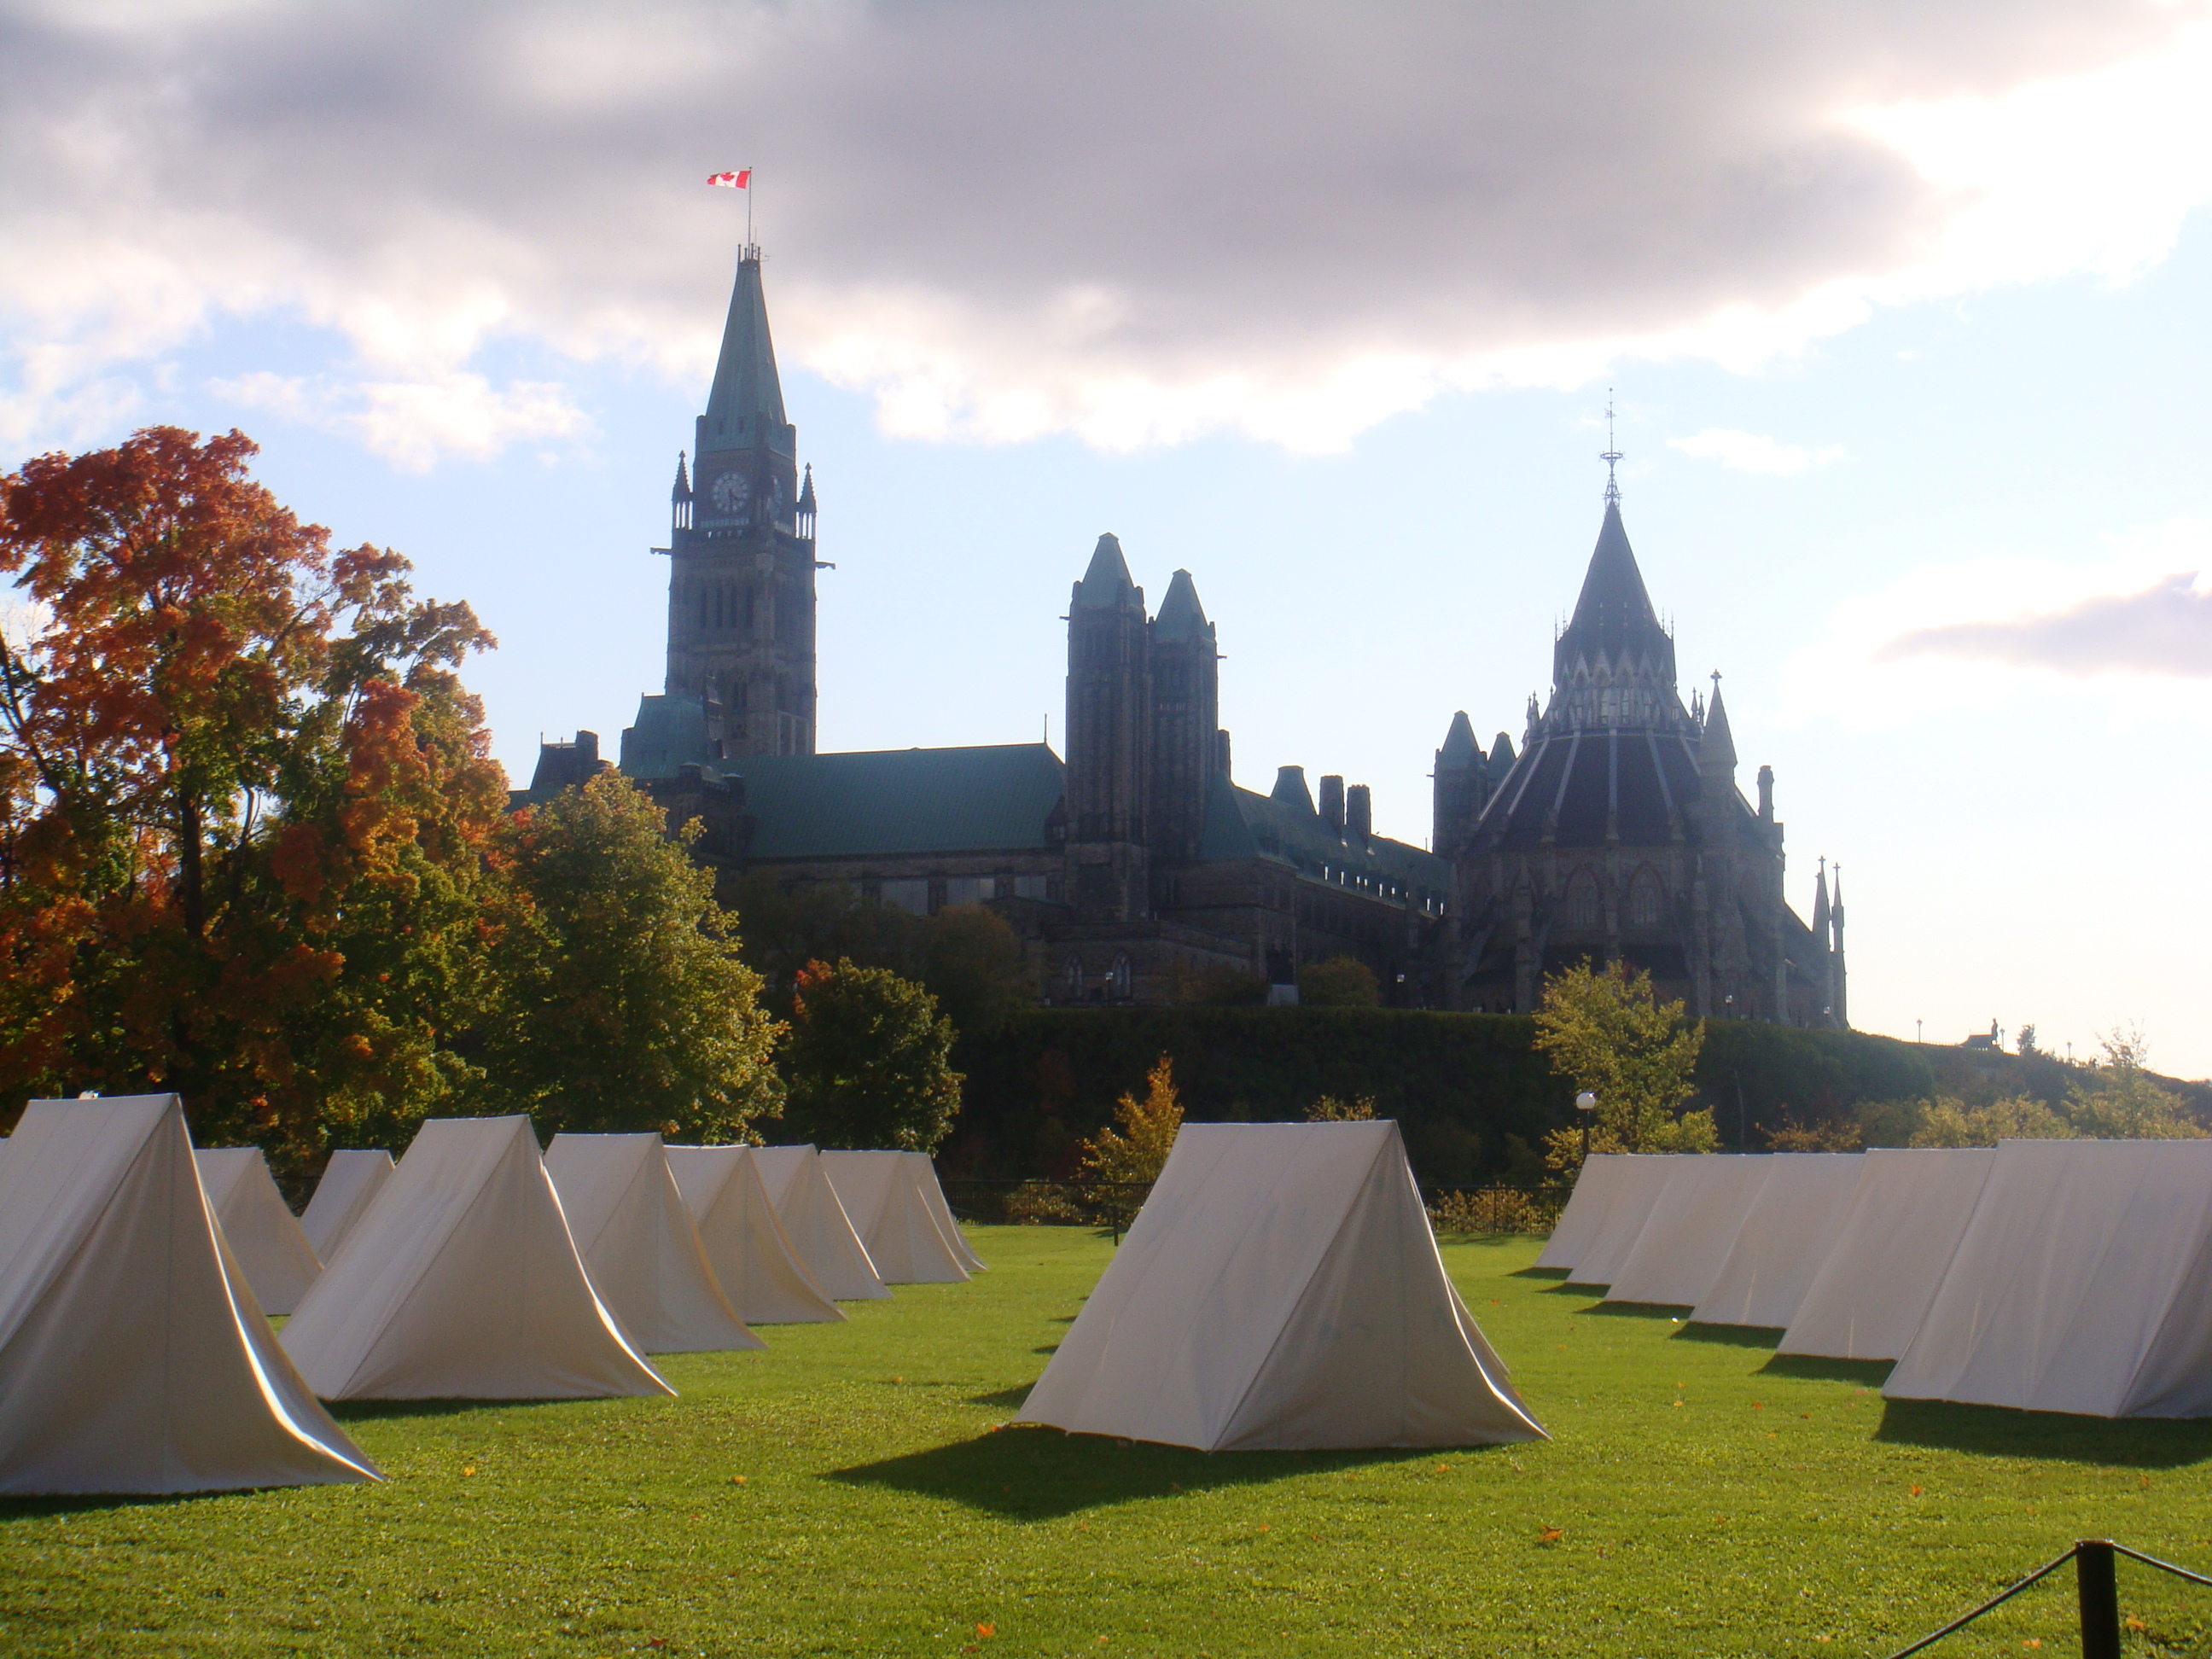 The Encampment Ottawa 2008